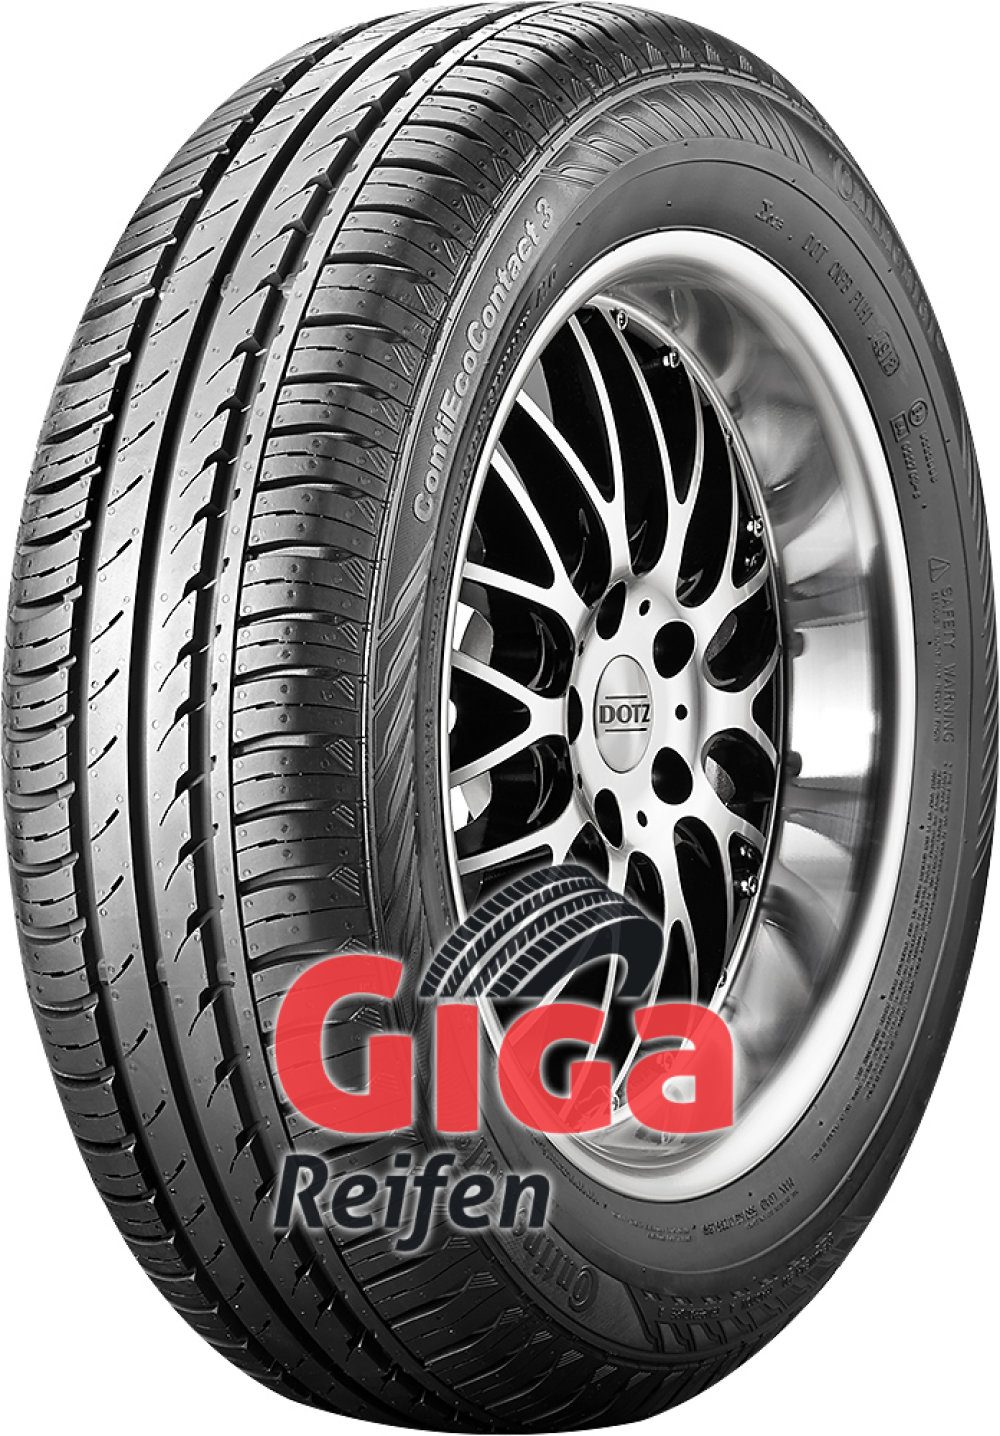 Continental EcoContact 3 ( 165/80 R13 83T )